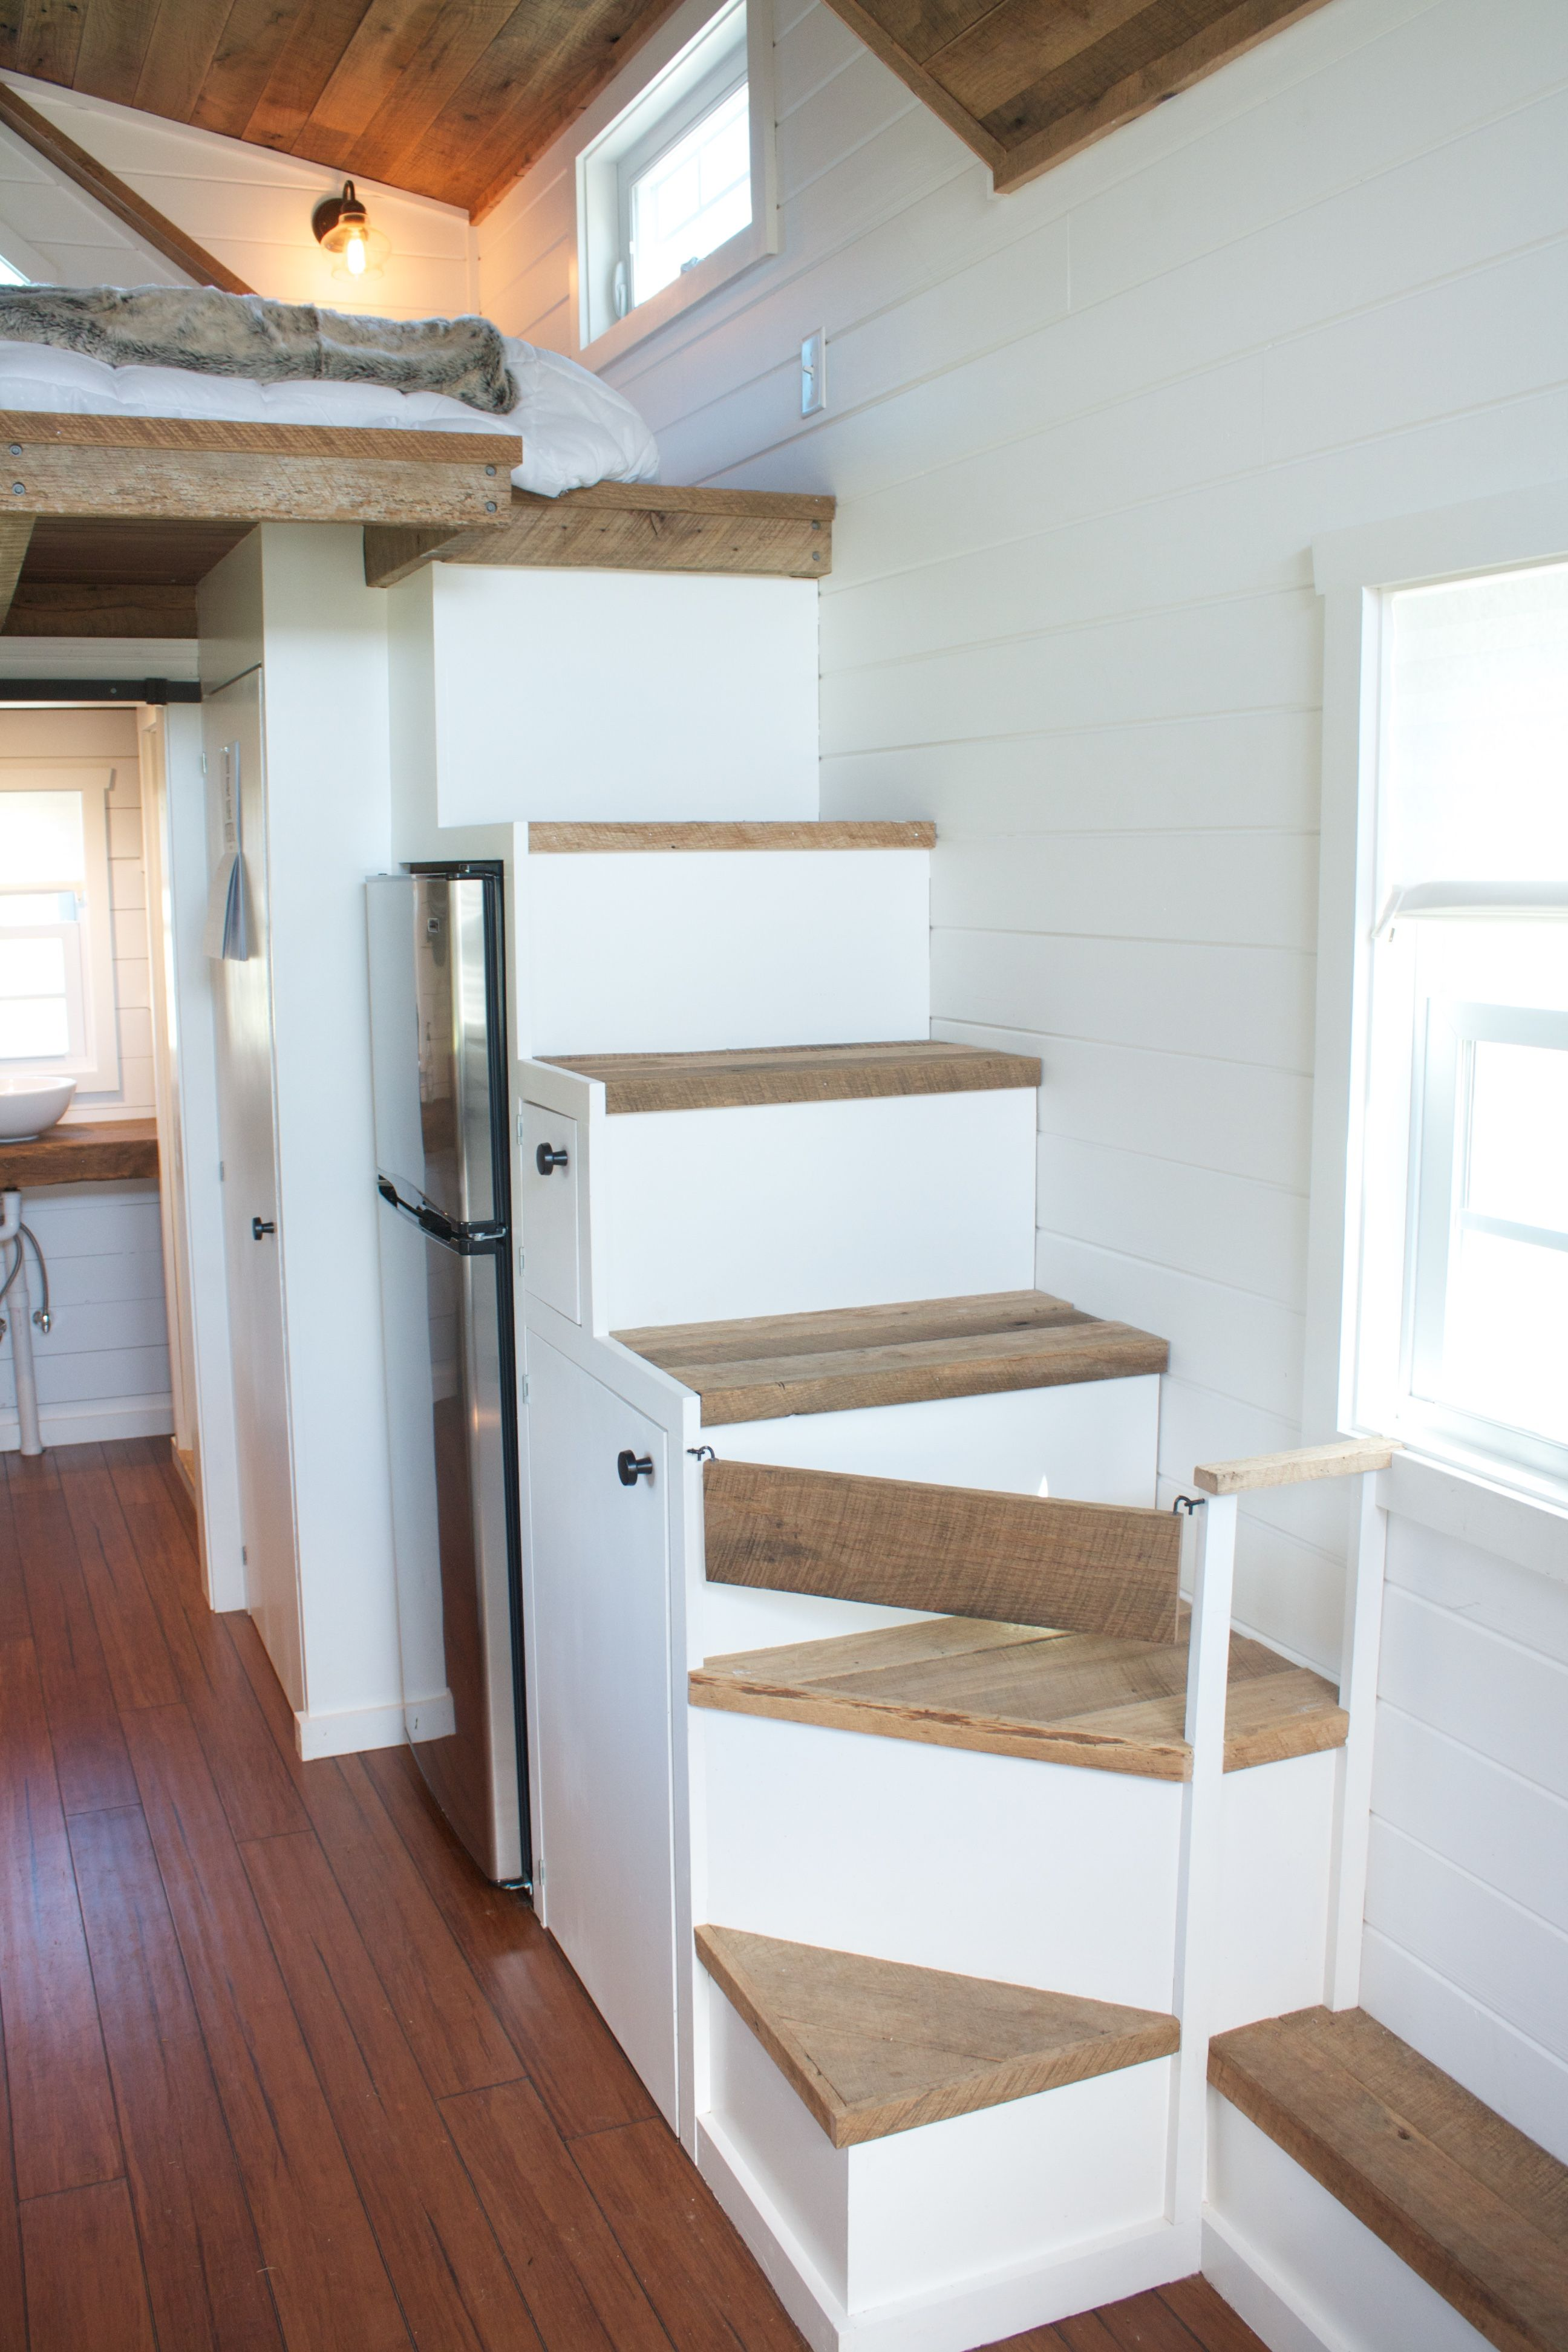 Modern Farmhouse Tiny House On Wheels With Storage Stairs   Simple Stairs Design For Small House